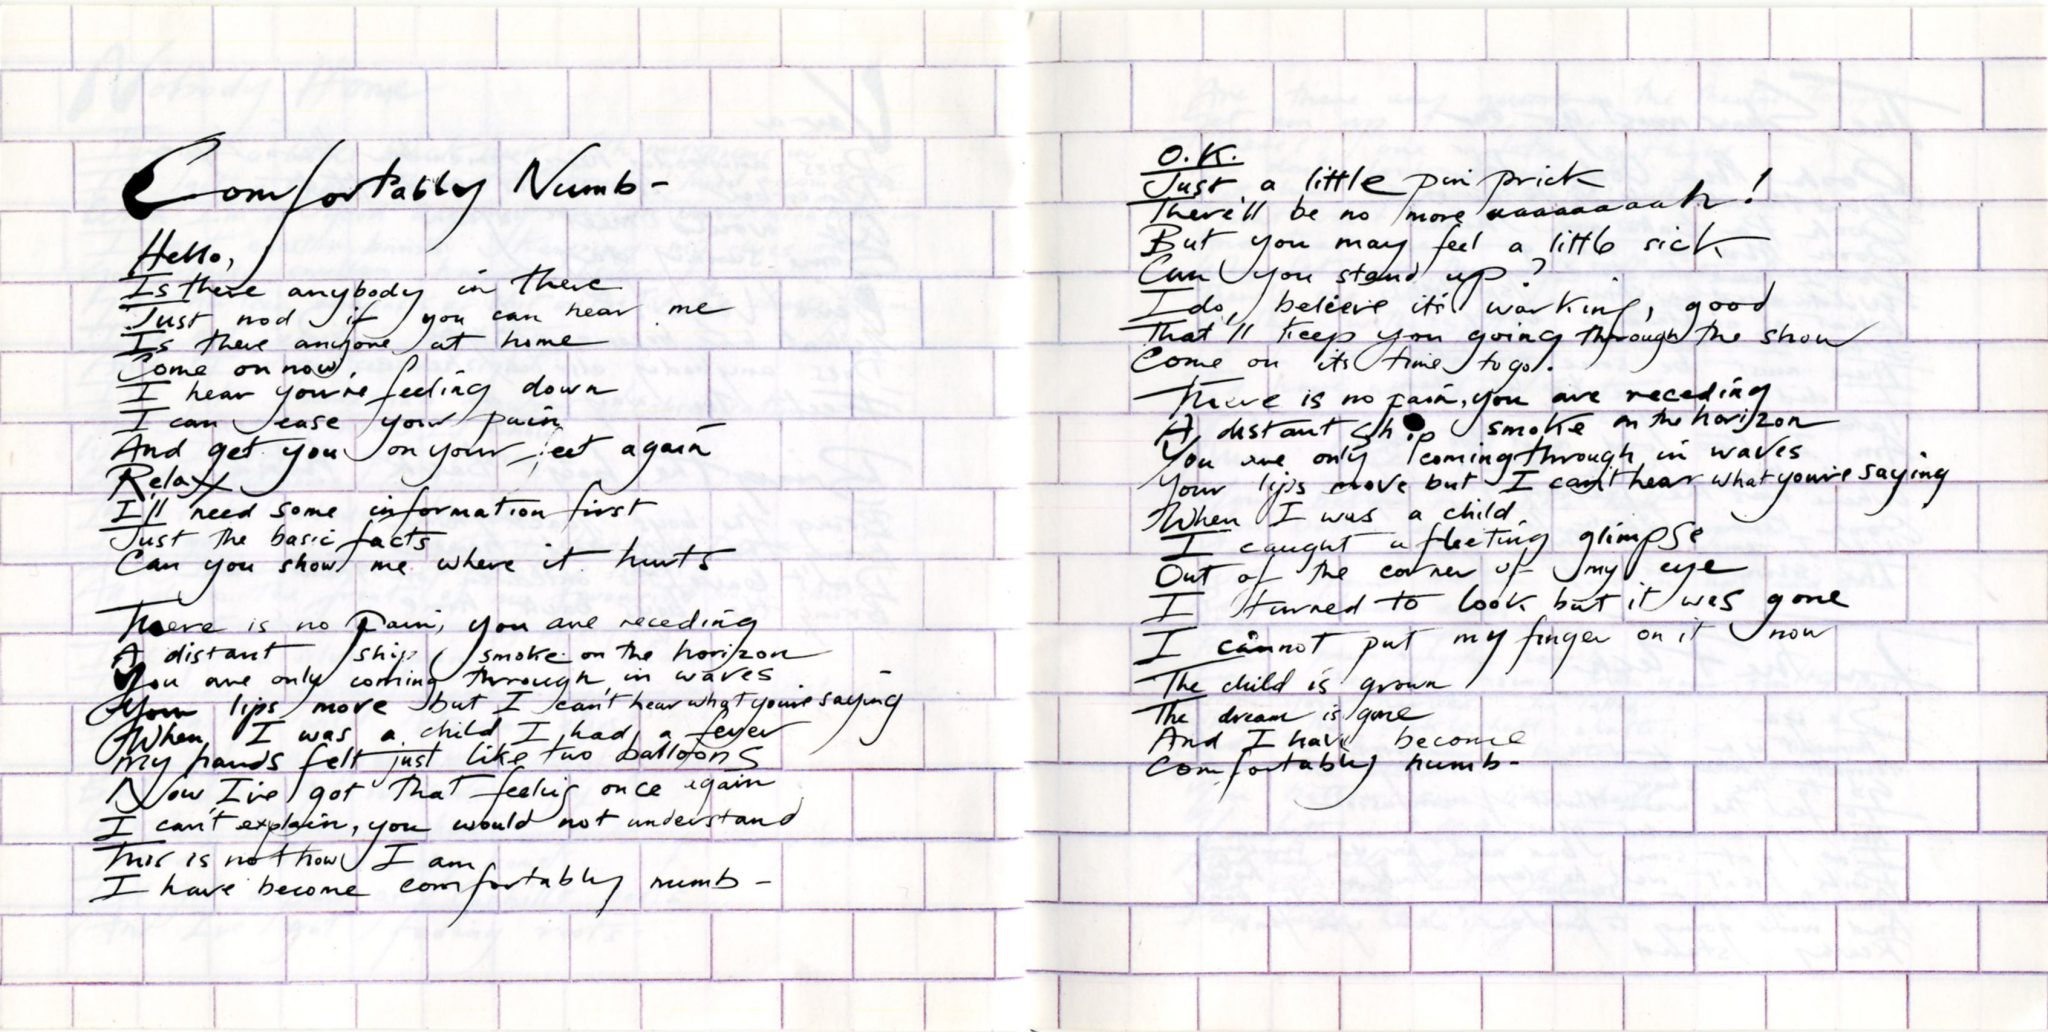 an analysis of the wall by pink floyd Pink floyd was inescapably crushed under the weight of the wall wright left before the release of the final cut , a dour and aptly-named disc on which gilmour and mason did what they were told in the studio by waters.